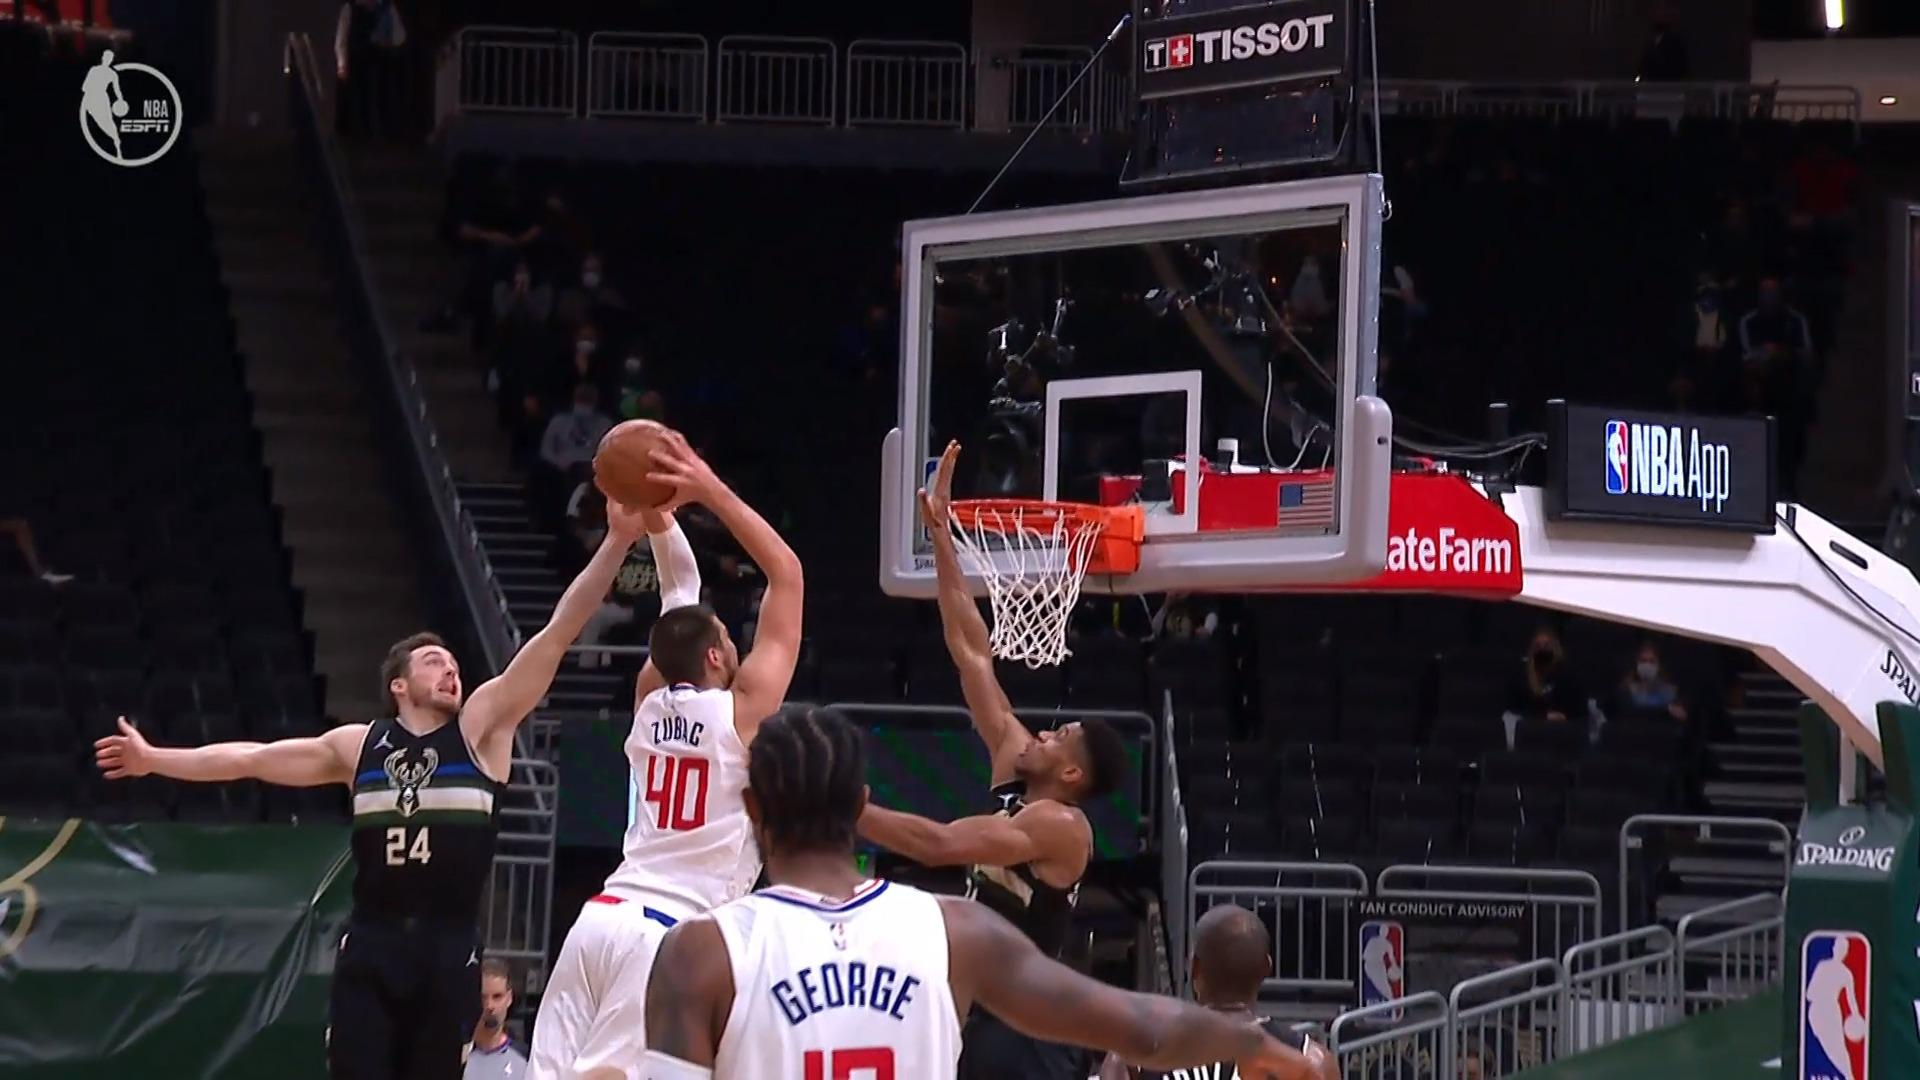 High Energy Highlight: Giannis Denies Zu At The Rim